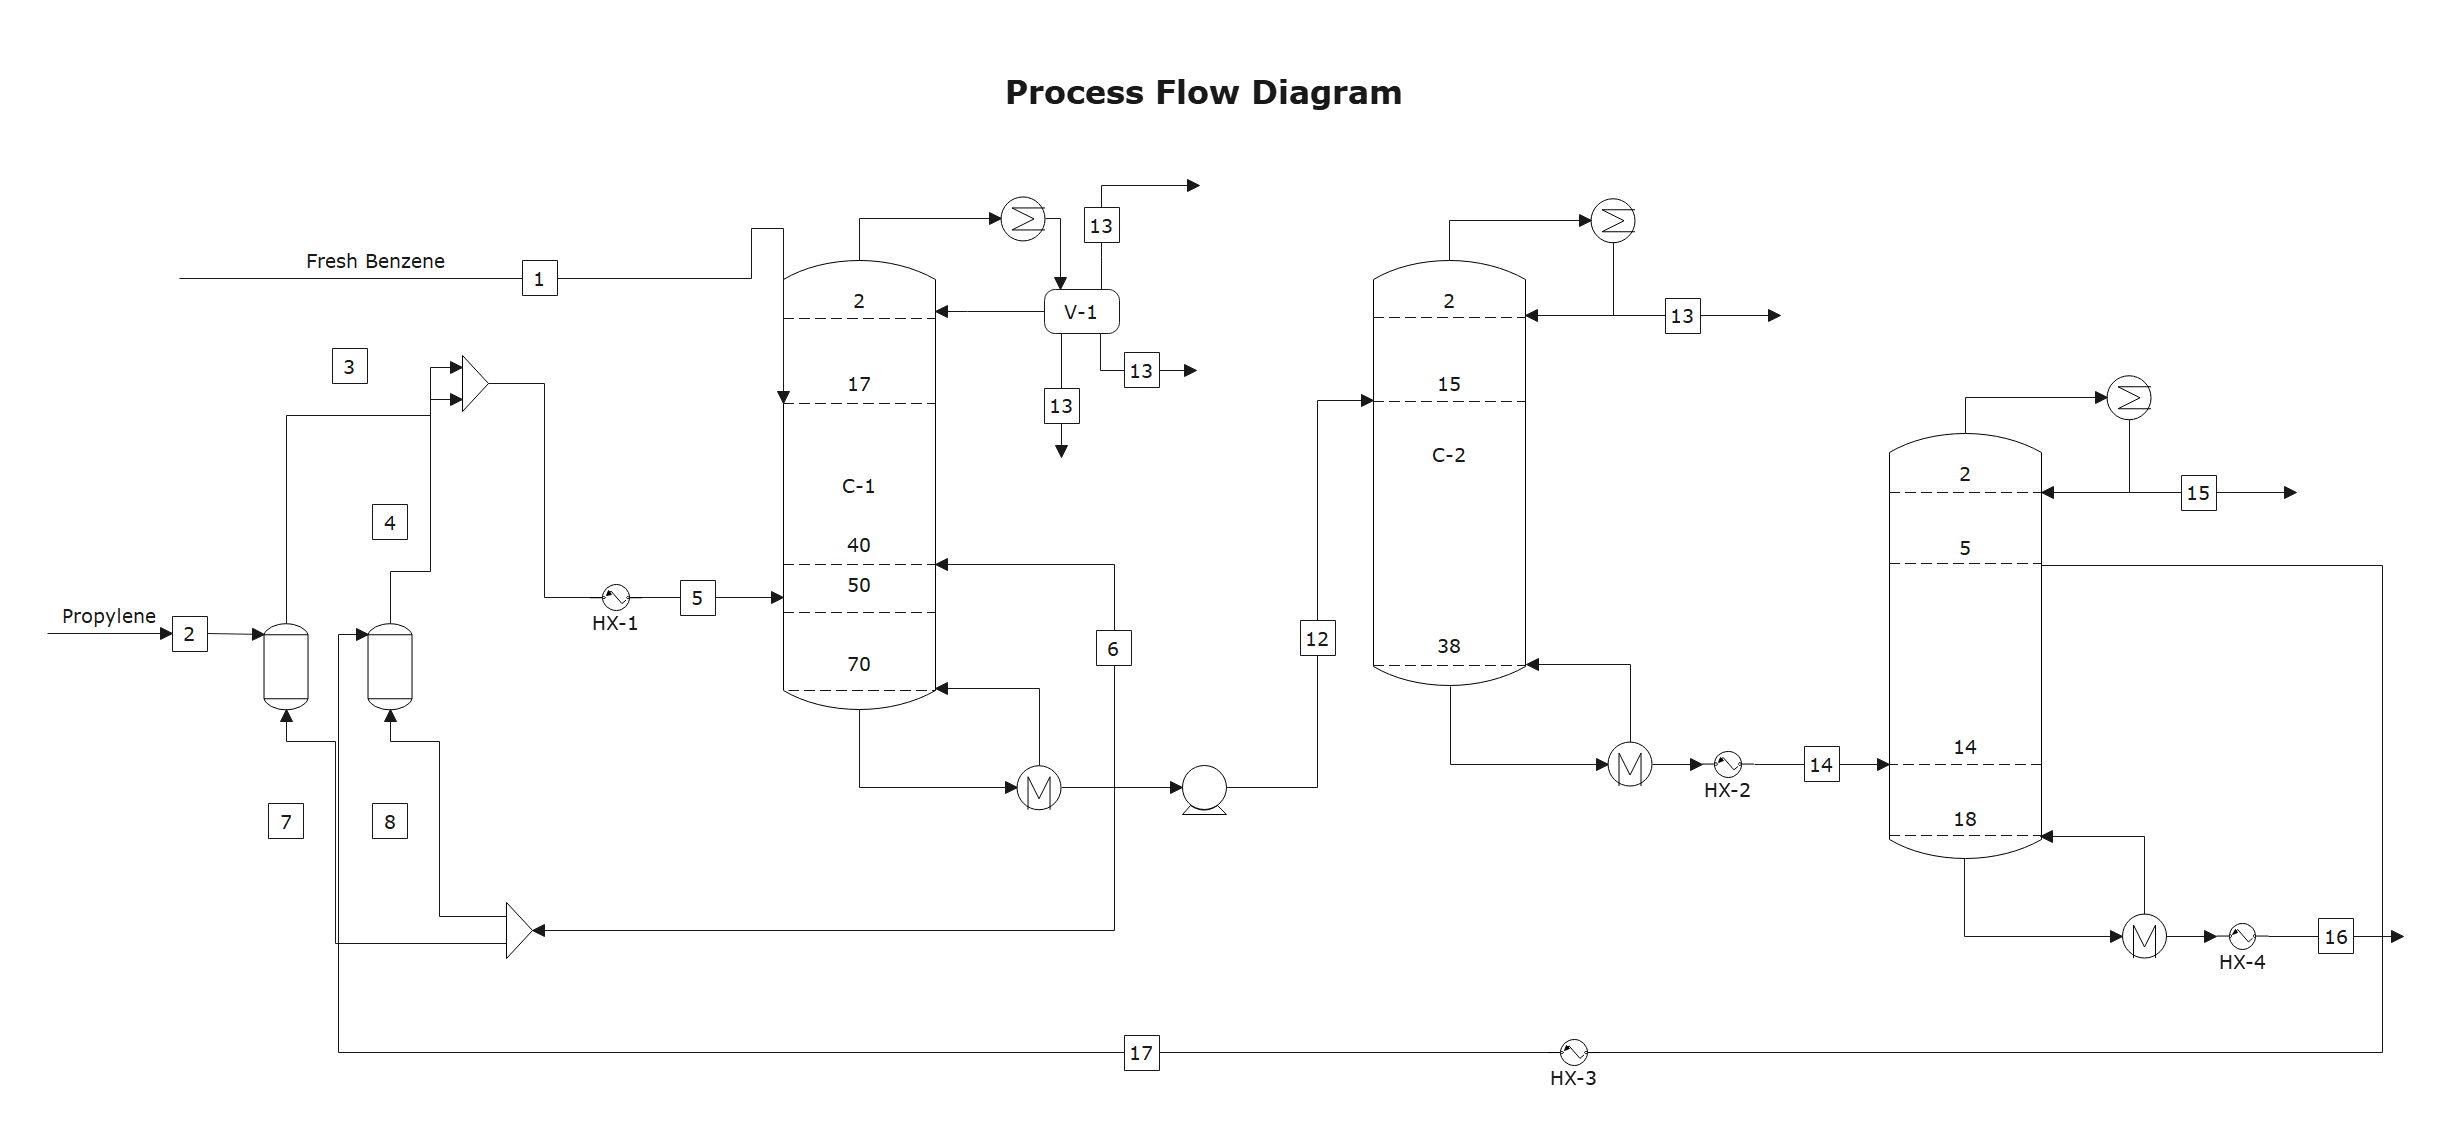 process flow diagram example 1